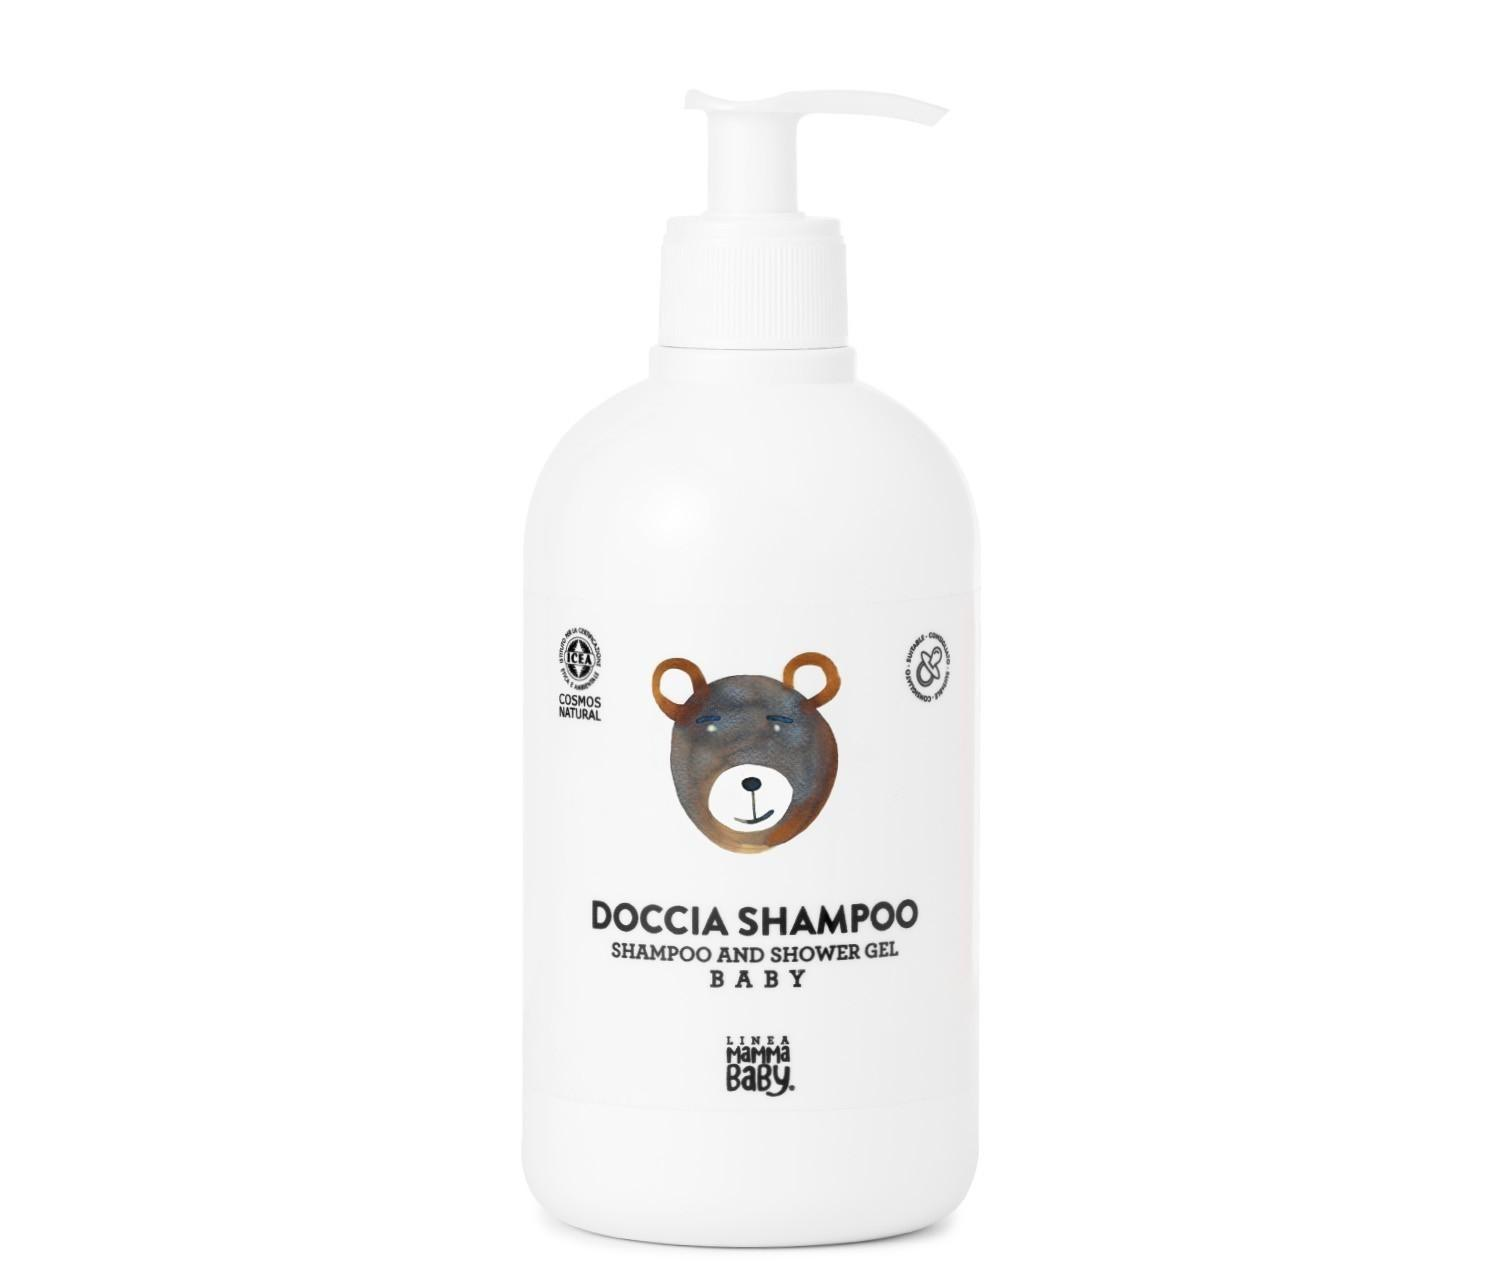 Linea Mammababy - Baby Shampoo and Shower Gel dispenser, 500ml